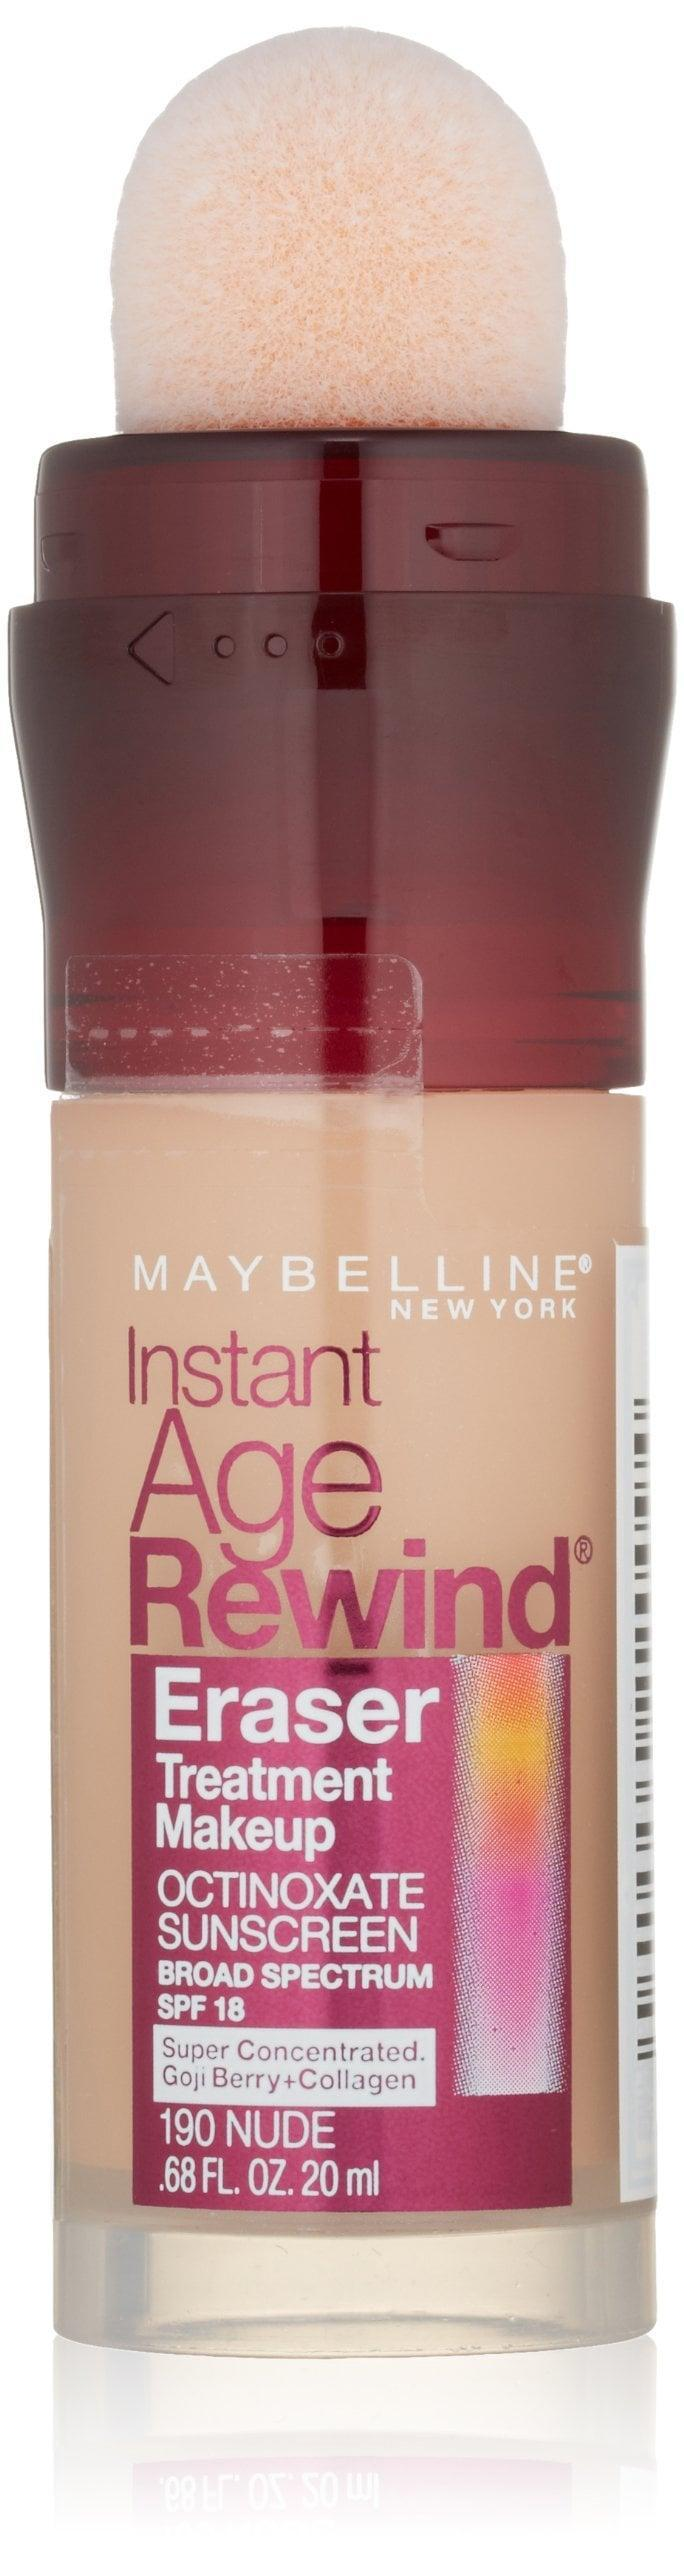 """<p>This <span>Maybelline New York Instant Age Rewind Eraser Concealer </span> ($8) is a bestseller on Amazon for brightening the under-eye area.</p> <p><strong>Customer Review:</strong> """"I have horrendous dark circles. At any given time I am wearing at least four different concealers in an effort to hide them. On a really bad day, five. I'll admit, I was skeptical about this product, but, in desperation, I thought I'd give it a try and wow, am I glad I did. It has amazing coverage and is highly blendable into my other makeup, which is a real plus. It didn't fade over time like some of my other, more expensive, brands have.""""</p>"""